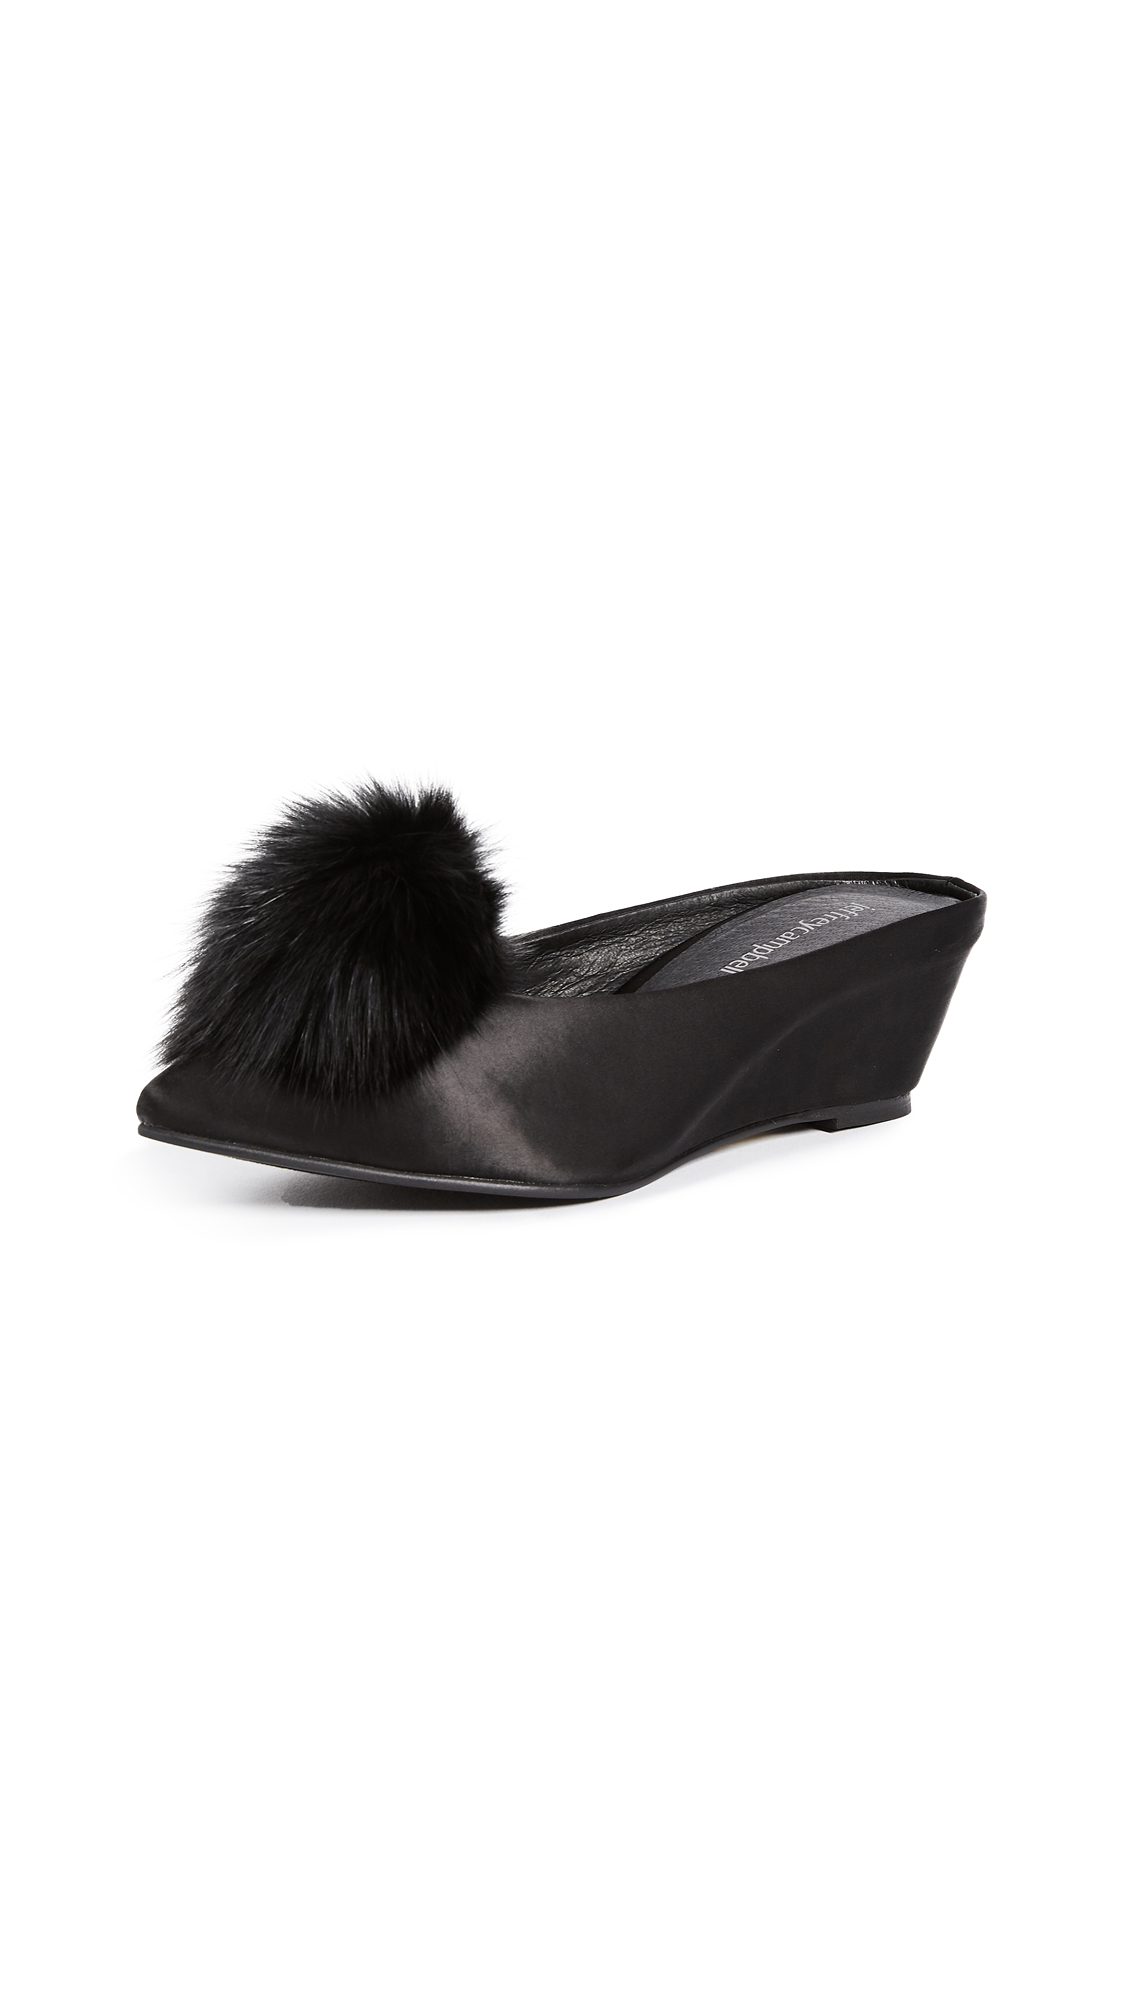 Jeffrey Campbell Ninon Point Toe Mules - Black